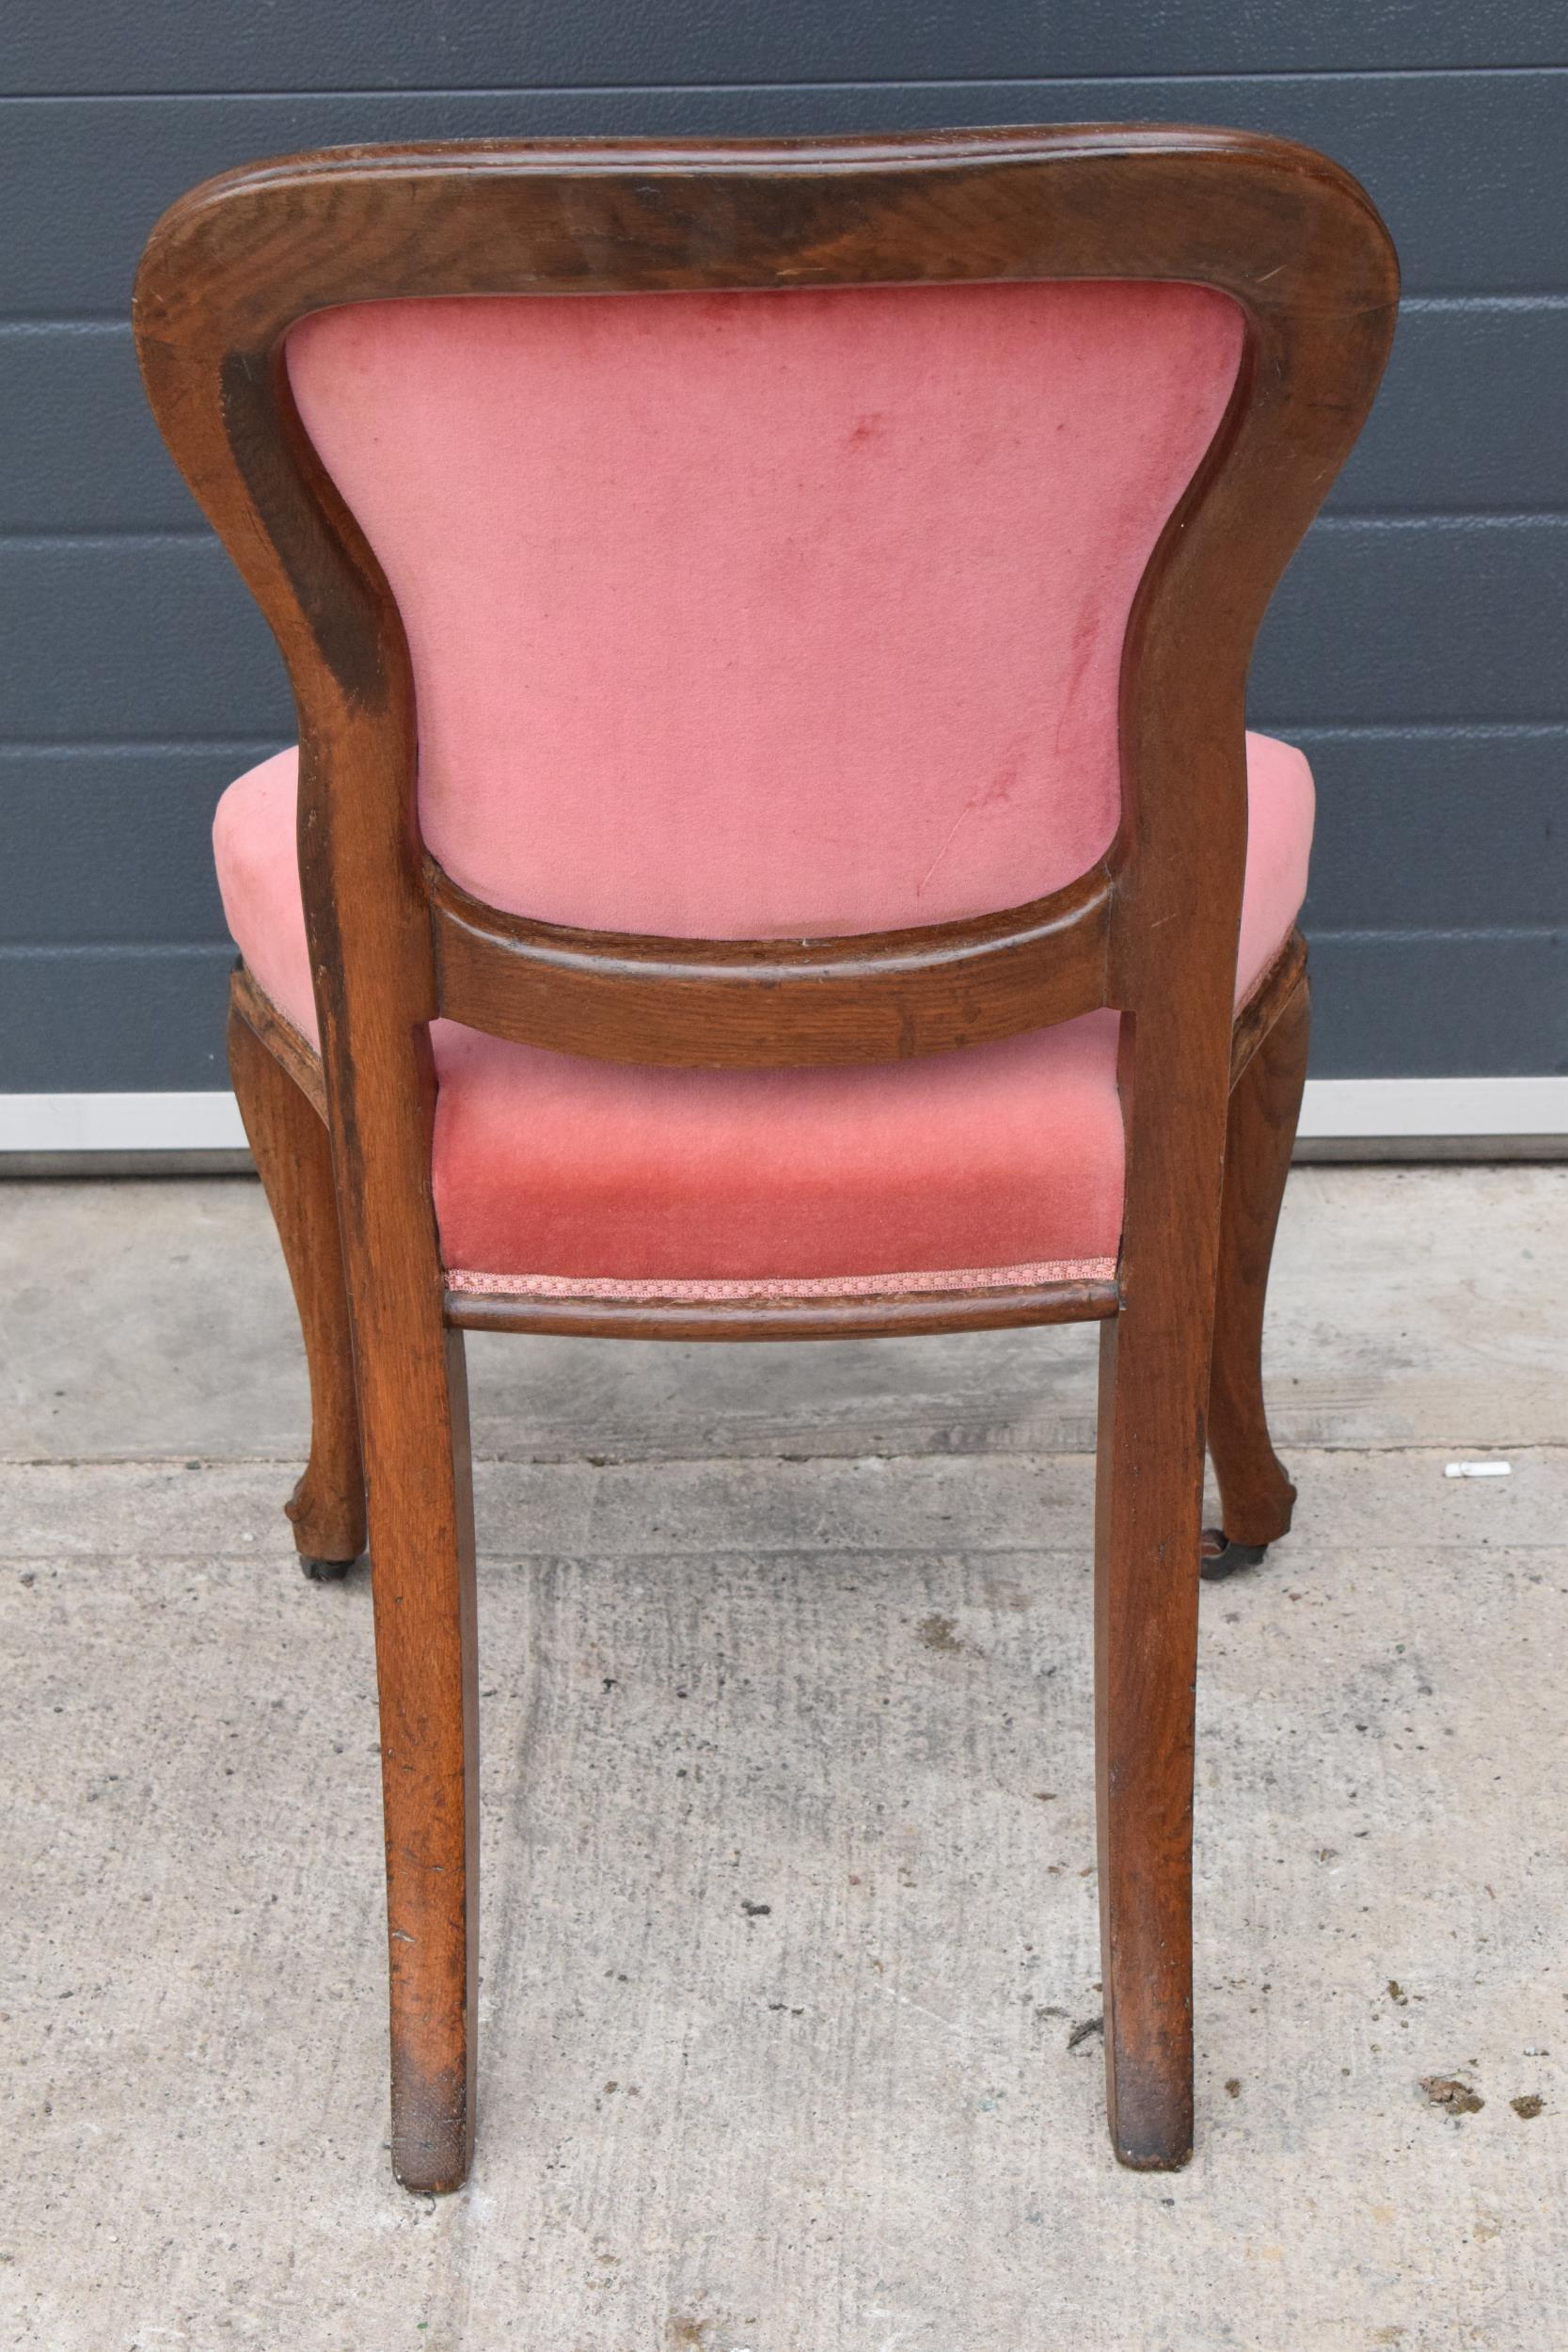 Edwardian upholstered parlour chair with pink upholstery. 90cm tall. - Image 5 of 6